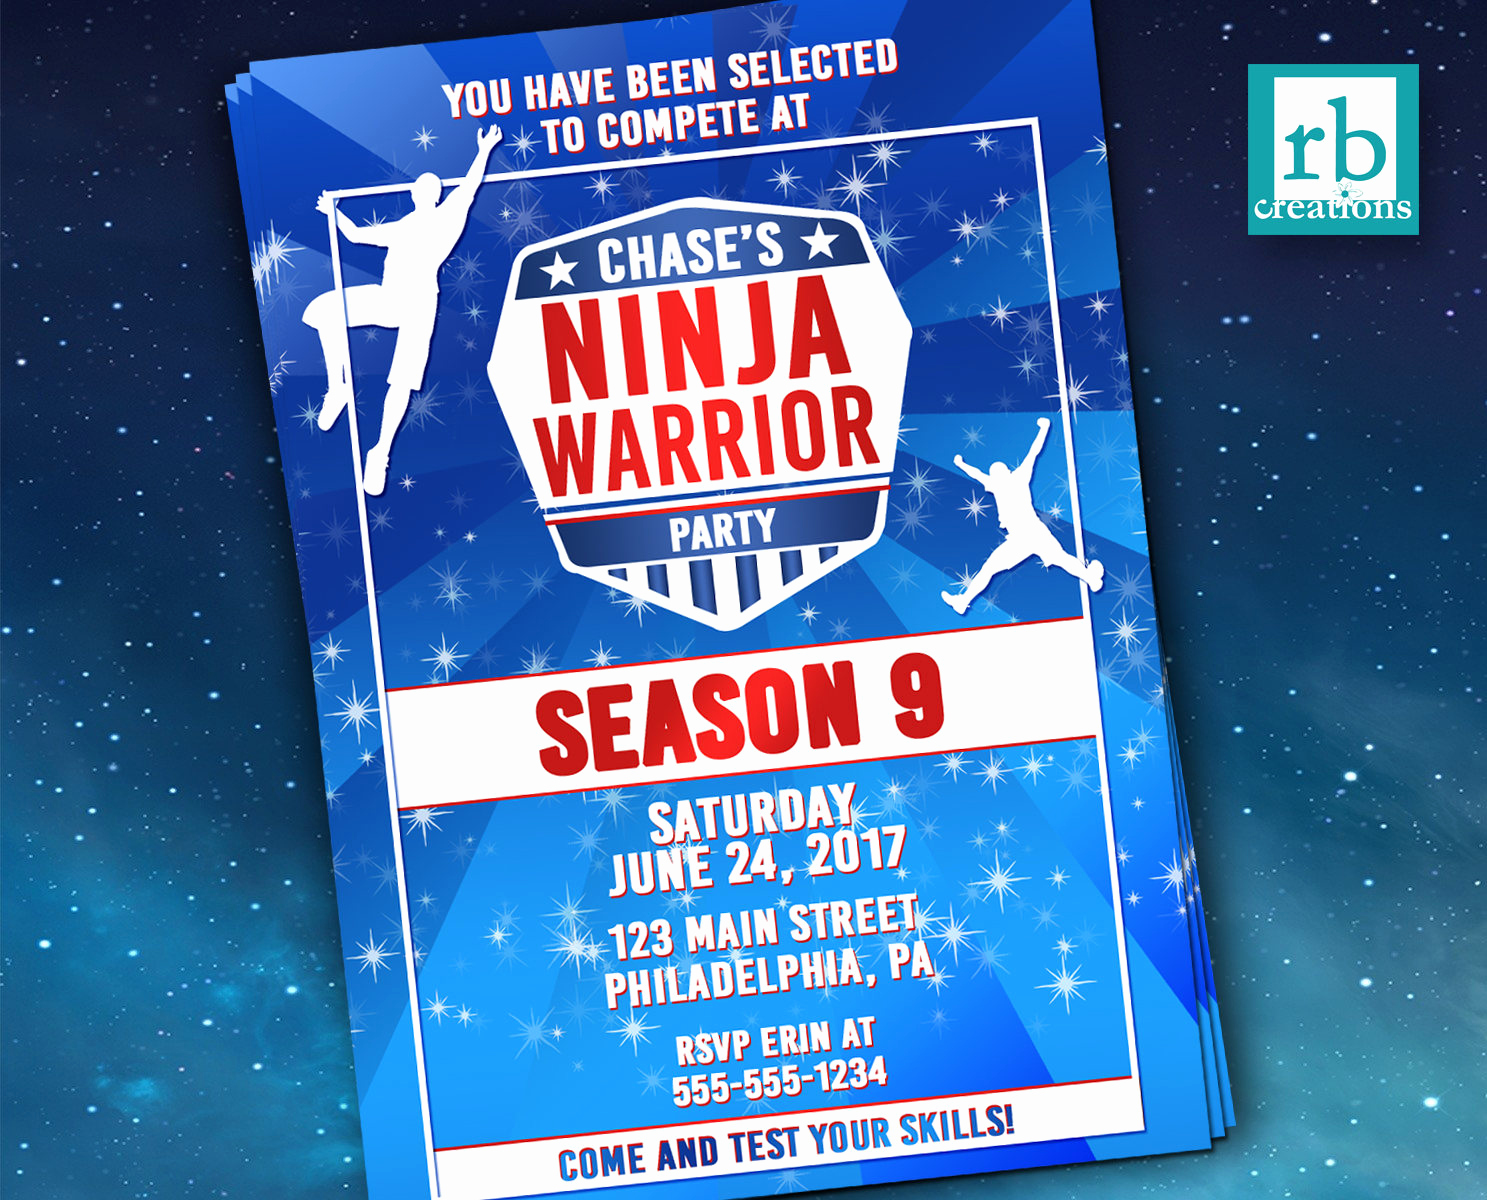 American Ninja Warrior Invitation Beautiful Printed Ninja Warrior Invitation Ninja Warrior Party Ninja